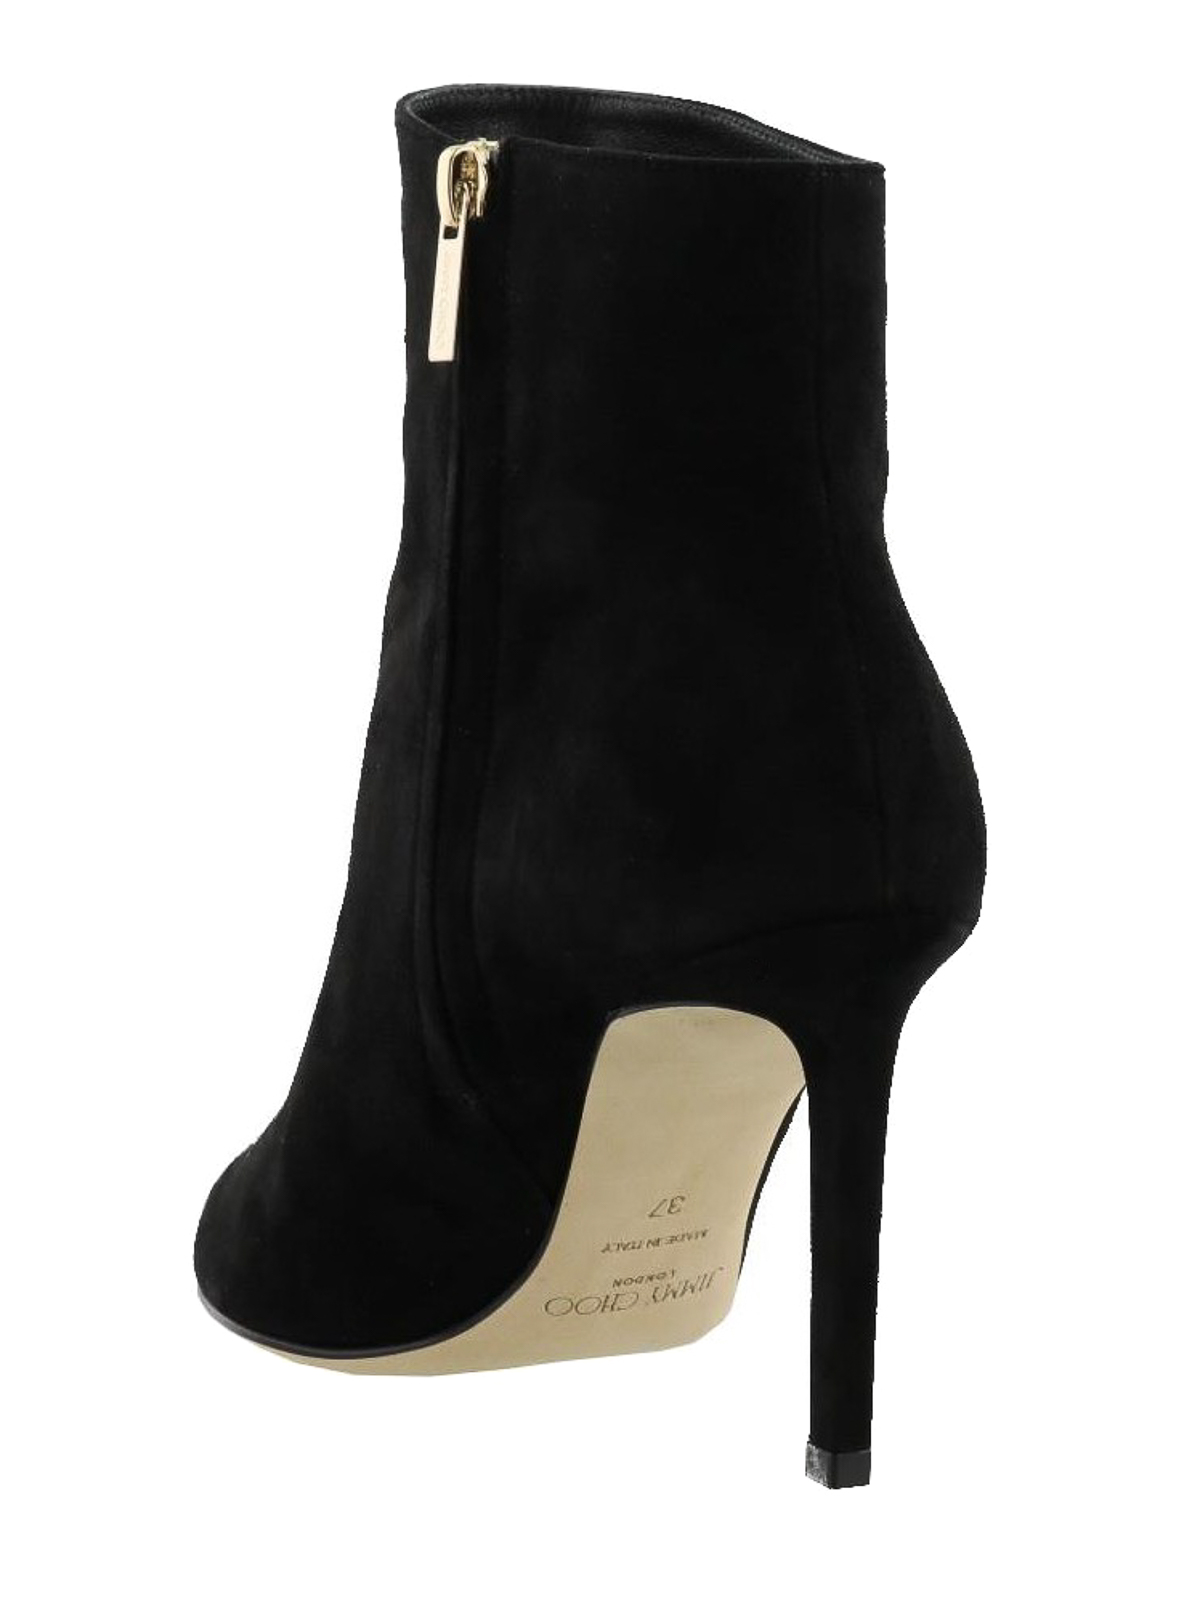 a49989f9634c Jimmy Choo - Helaine black suede heeled booties - ankle boots ...